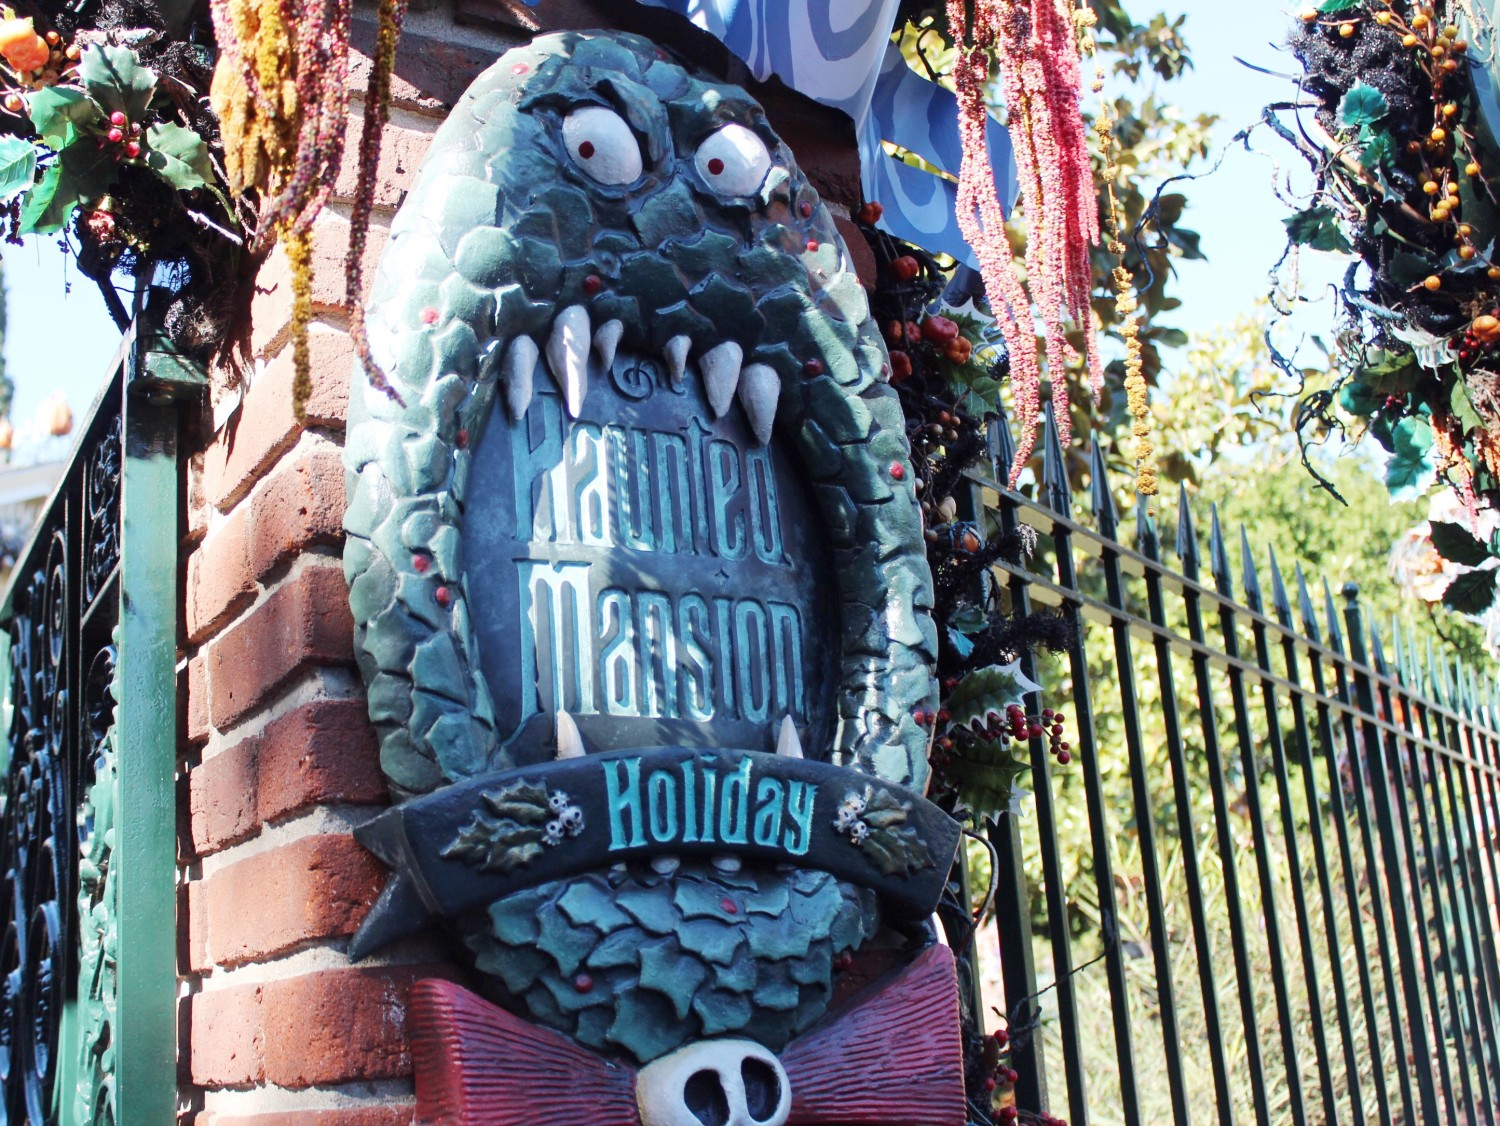 Disneyland Haunted Mansion Holiday Sign